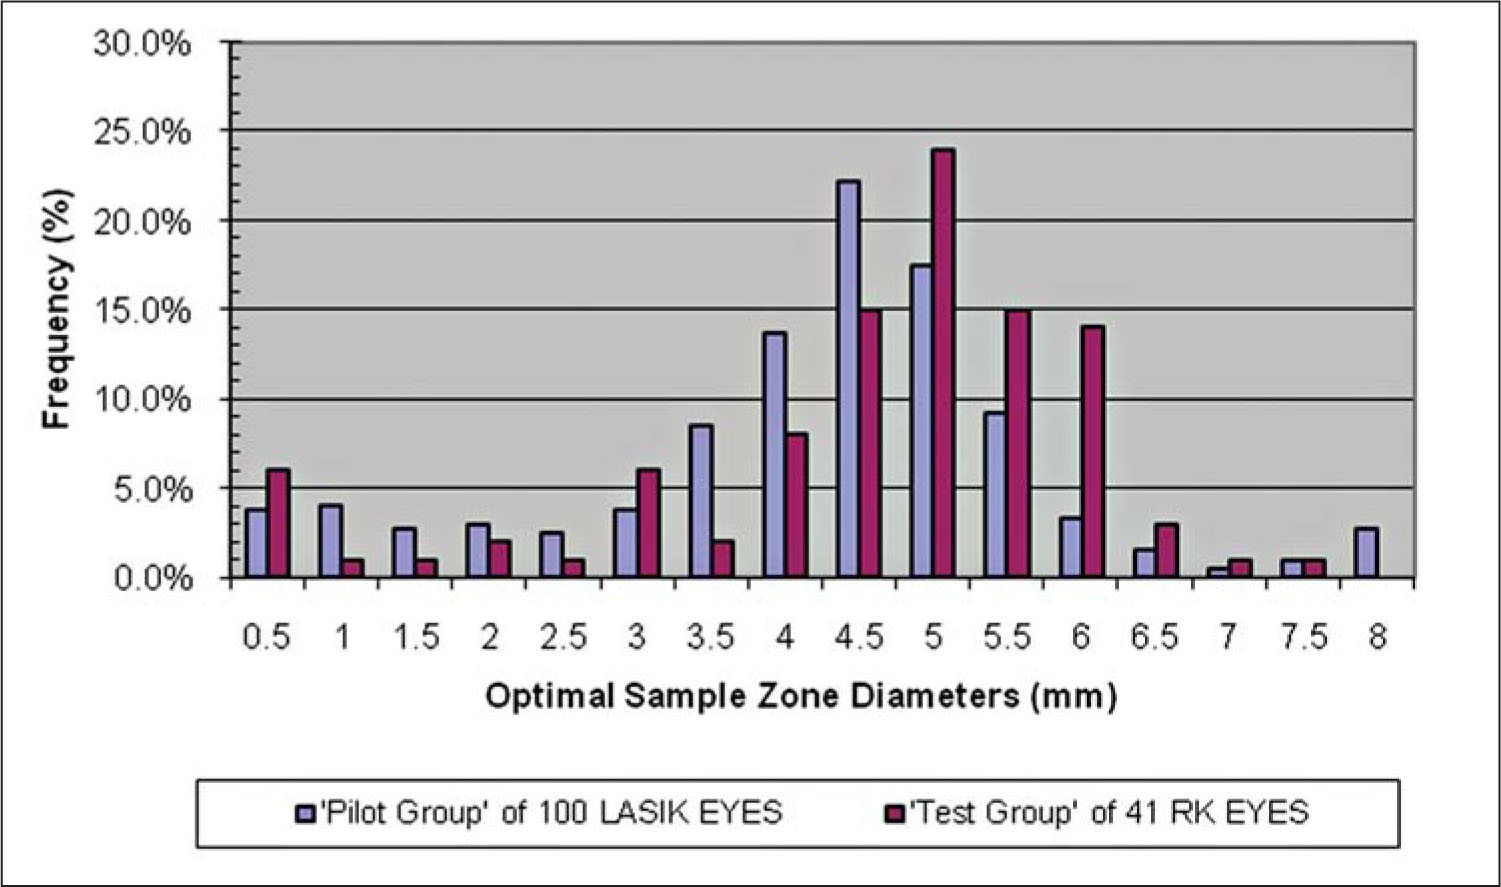 Frequency of the Optimal Sample Zone Diameter that Yielded the Best Correlation with Equivalent Keratometry (K) -Reading. The Mode Is 4.5 mm for the Pilot Group of 100 LASIK Eyes and 5.0 mm for the Test Group of 41 Radial Keratotomy (RK) Eyes, with a Great Deal of Variation for Both.